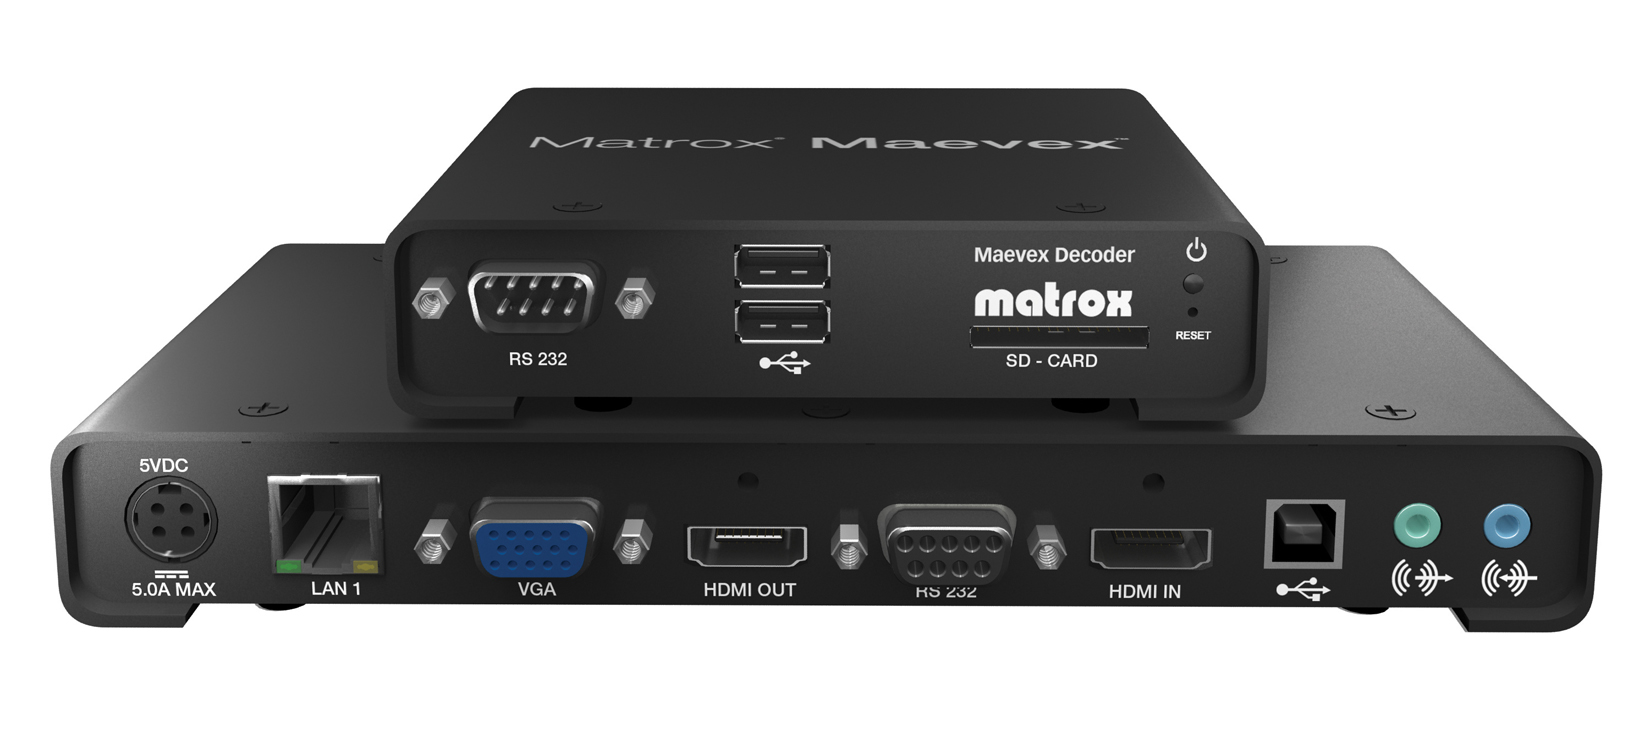 Matrox_Maevex_Video_Distribution_Over_IP_NAB.jpg